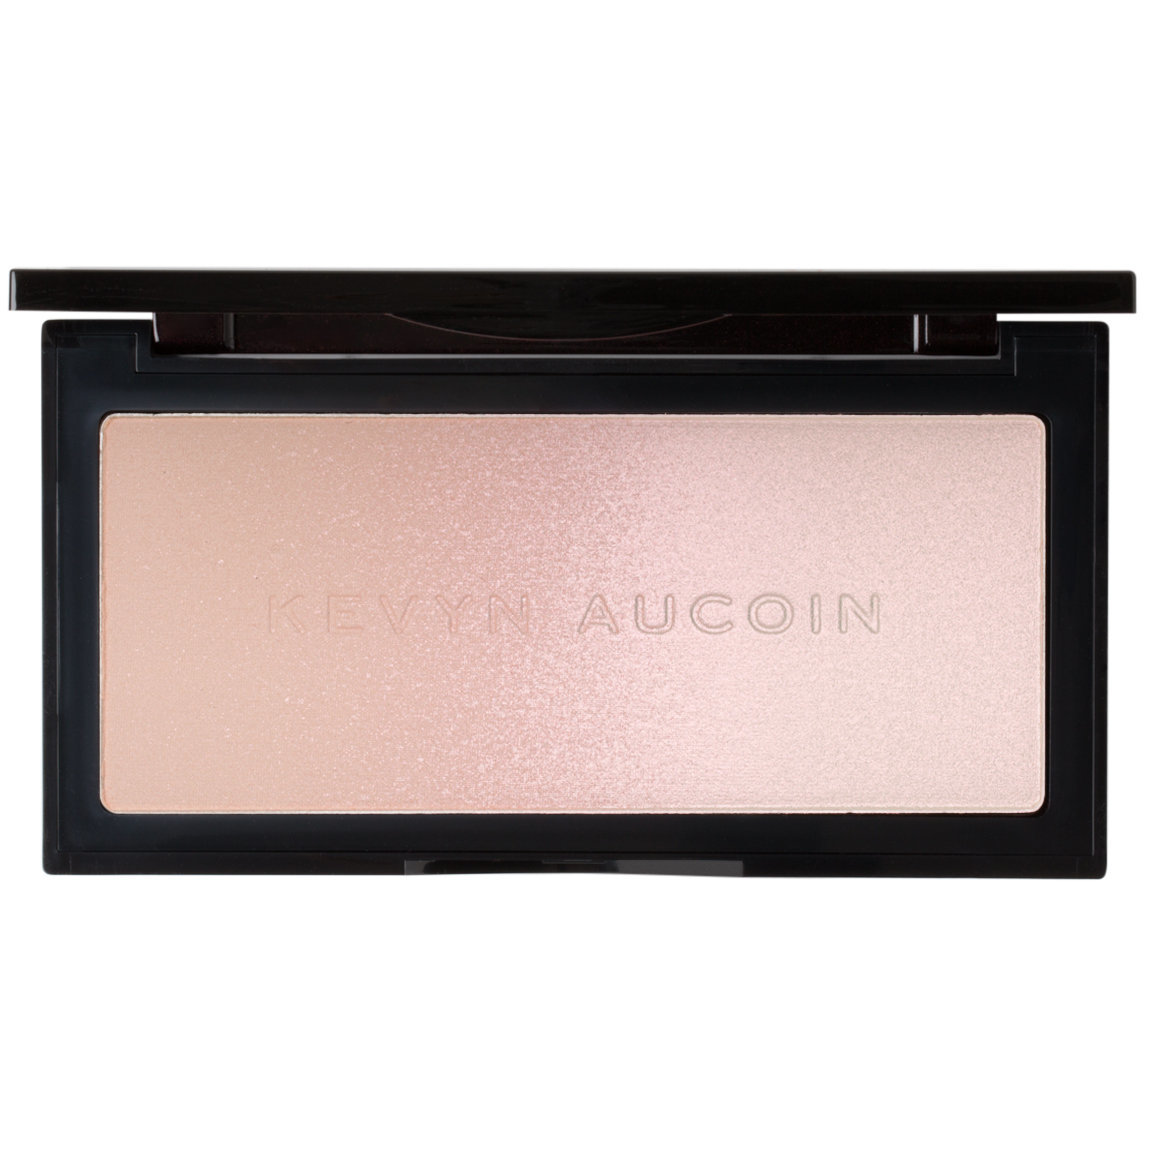 Kevyn Aucoin The Neo-Setting Powder product swatch.